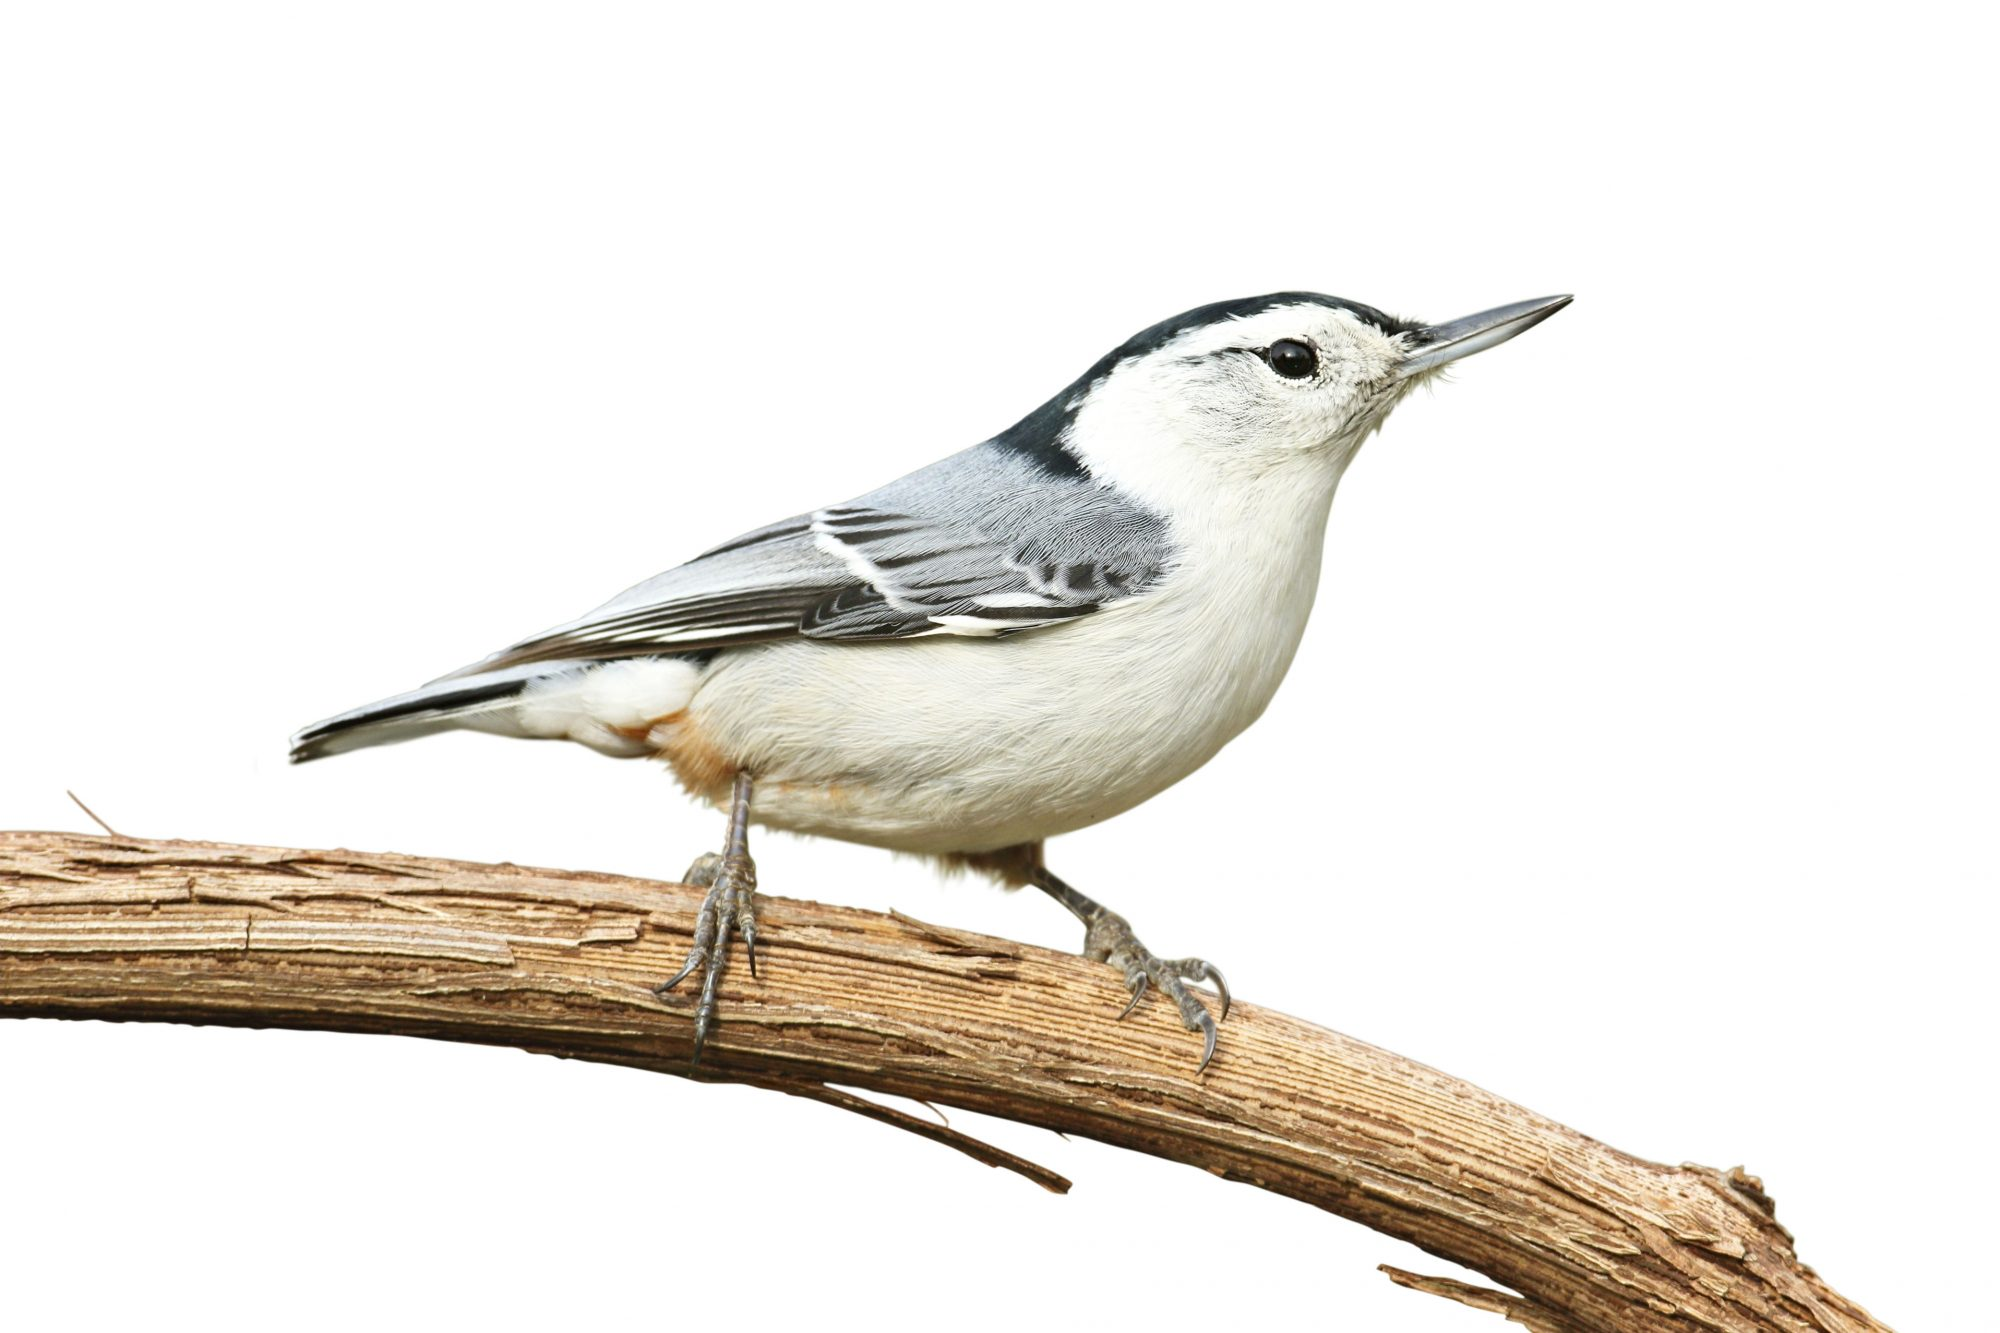 White-Breasted Nuthatch bird on branch